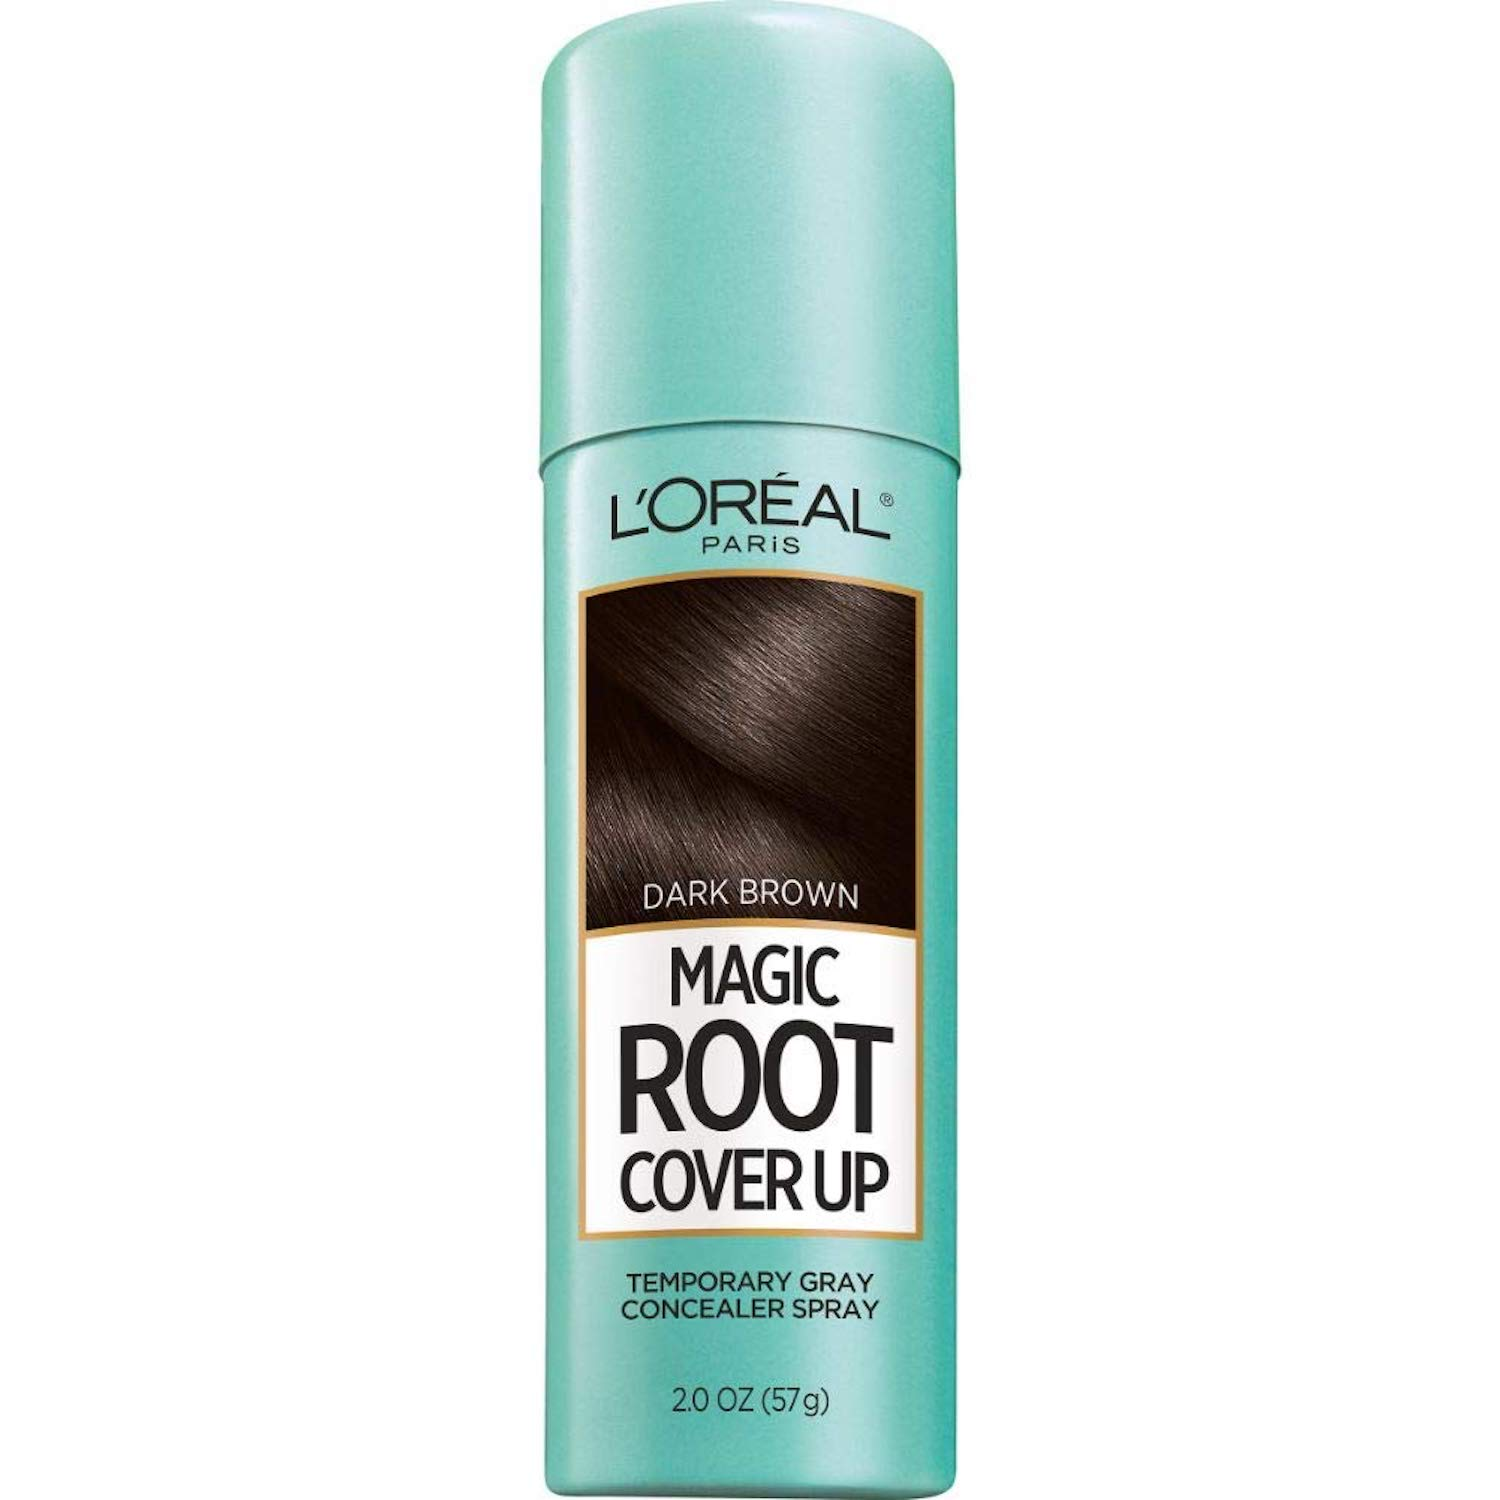 L'Oreal Paris Magic Root Cover Up